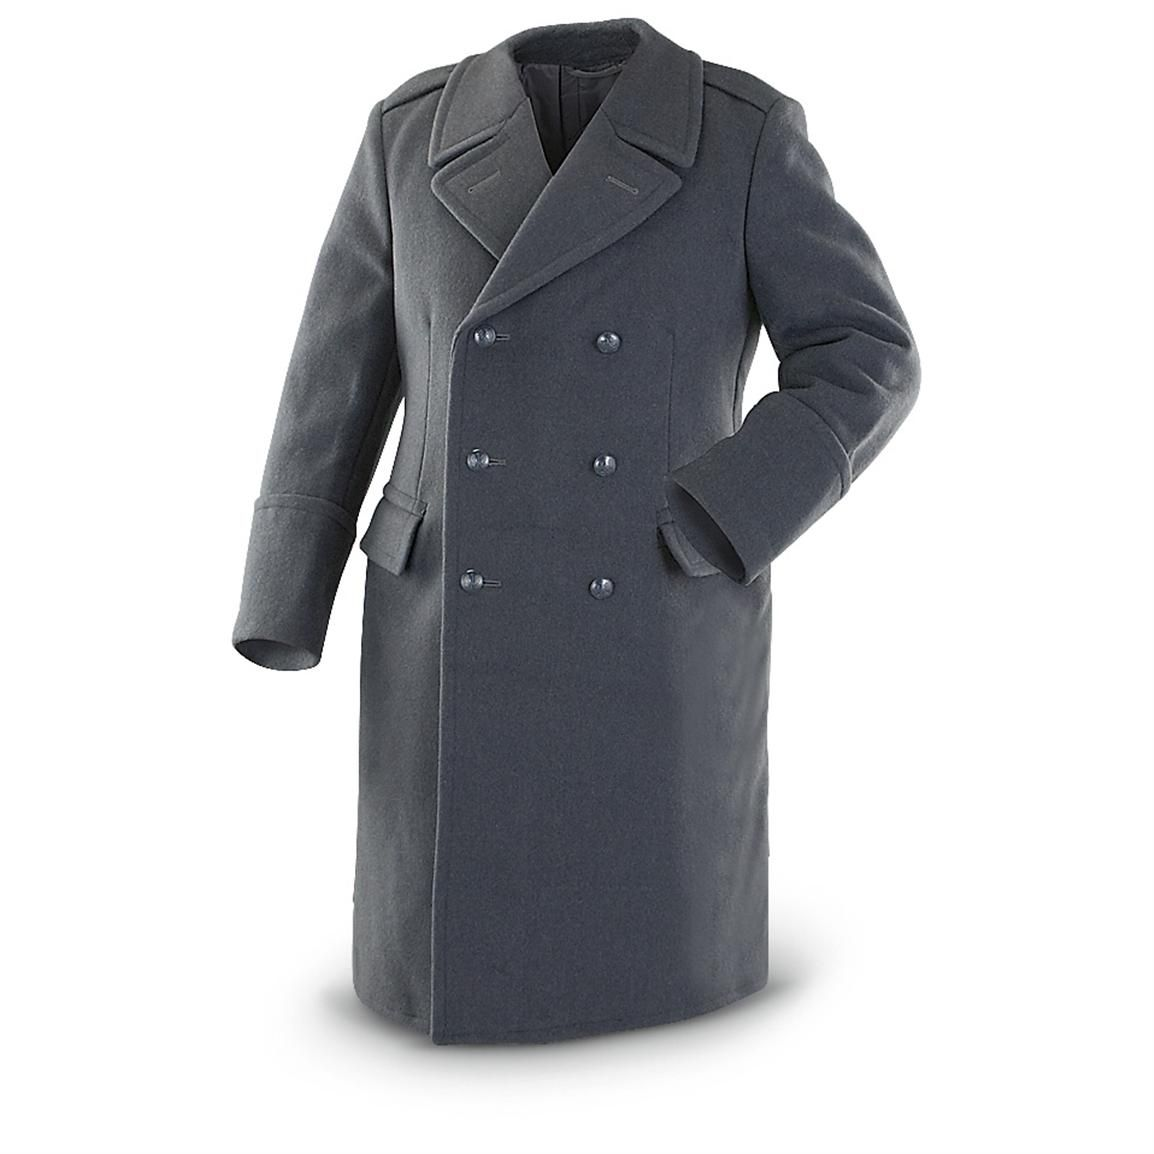 New Polish Military Wool Overcoat, Blue / Gray - Acceptable for LW ...